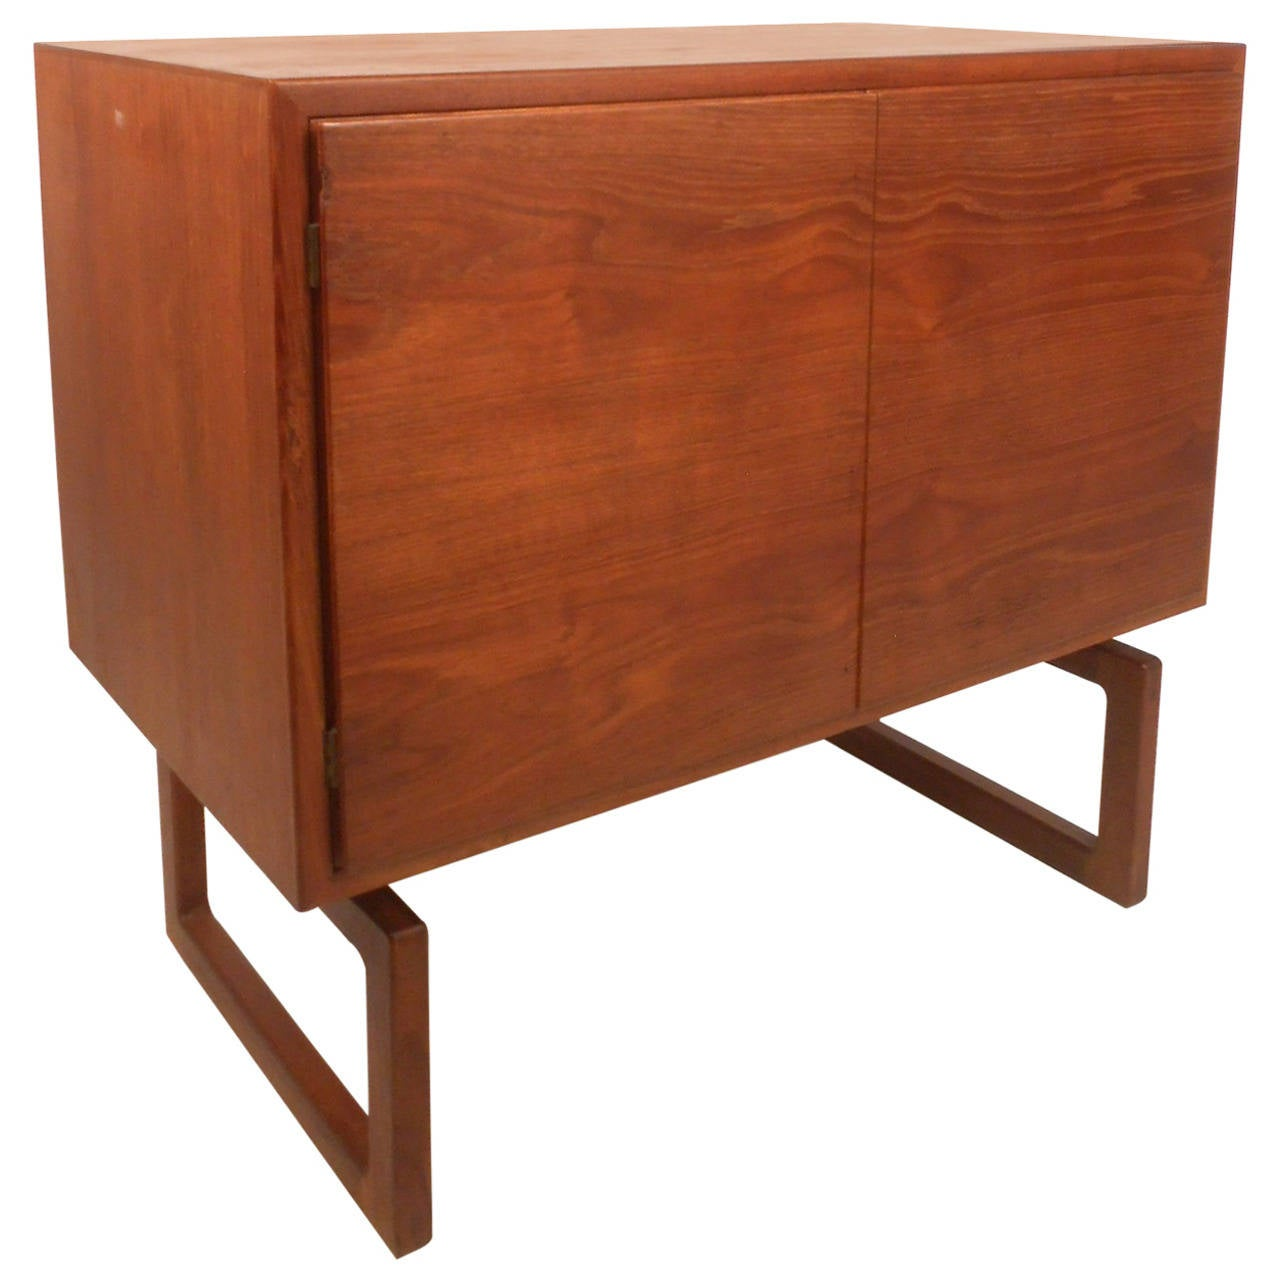 Stylish mid century modern danish teak cabinet at 1stdibs for Modern teak kitchen cabinets